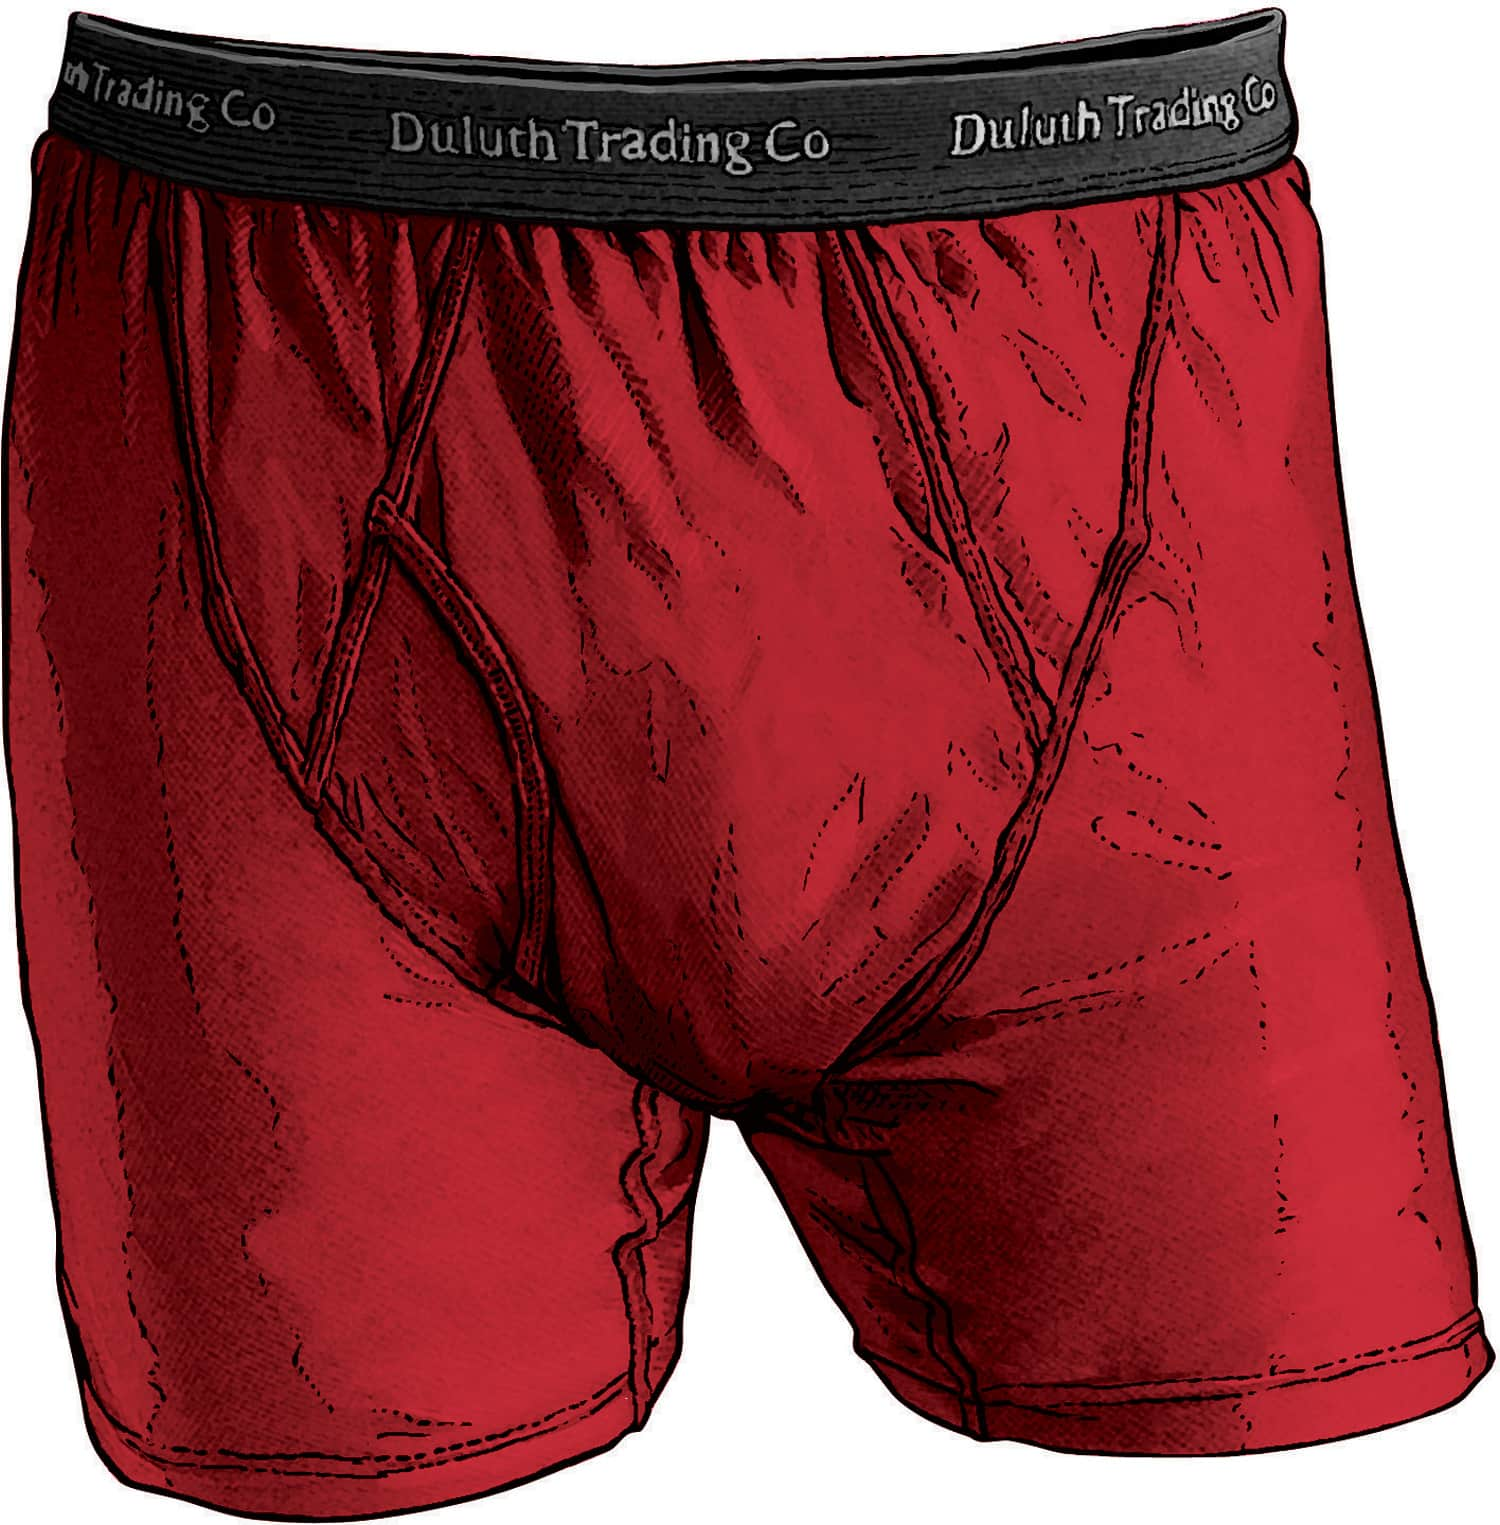 DuluthTrading - Buck Naked Underwear Sale - Men's $14.50 + 20% and free shipping over $75